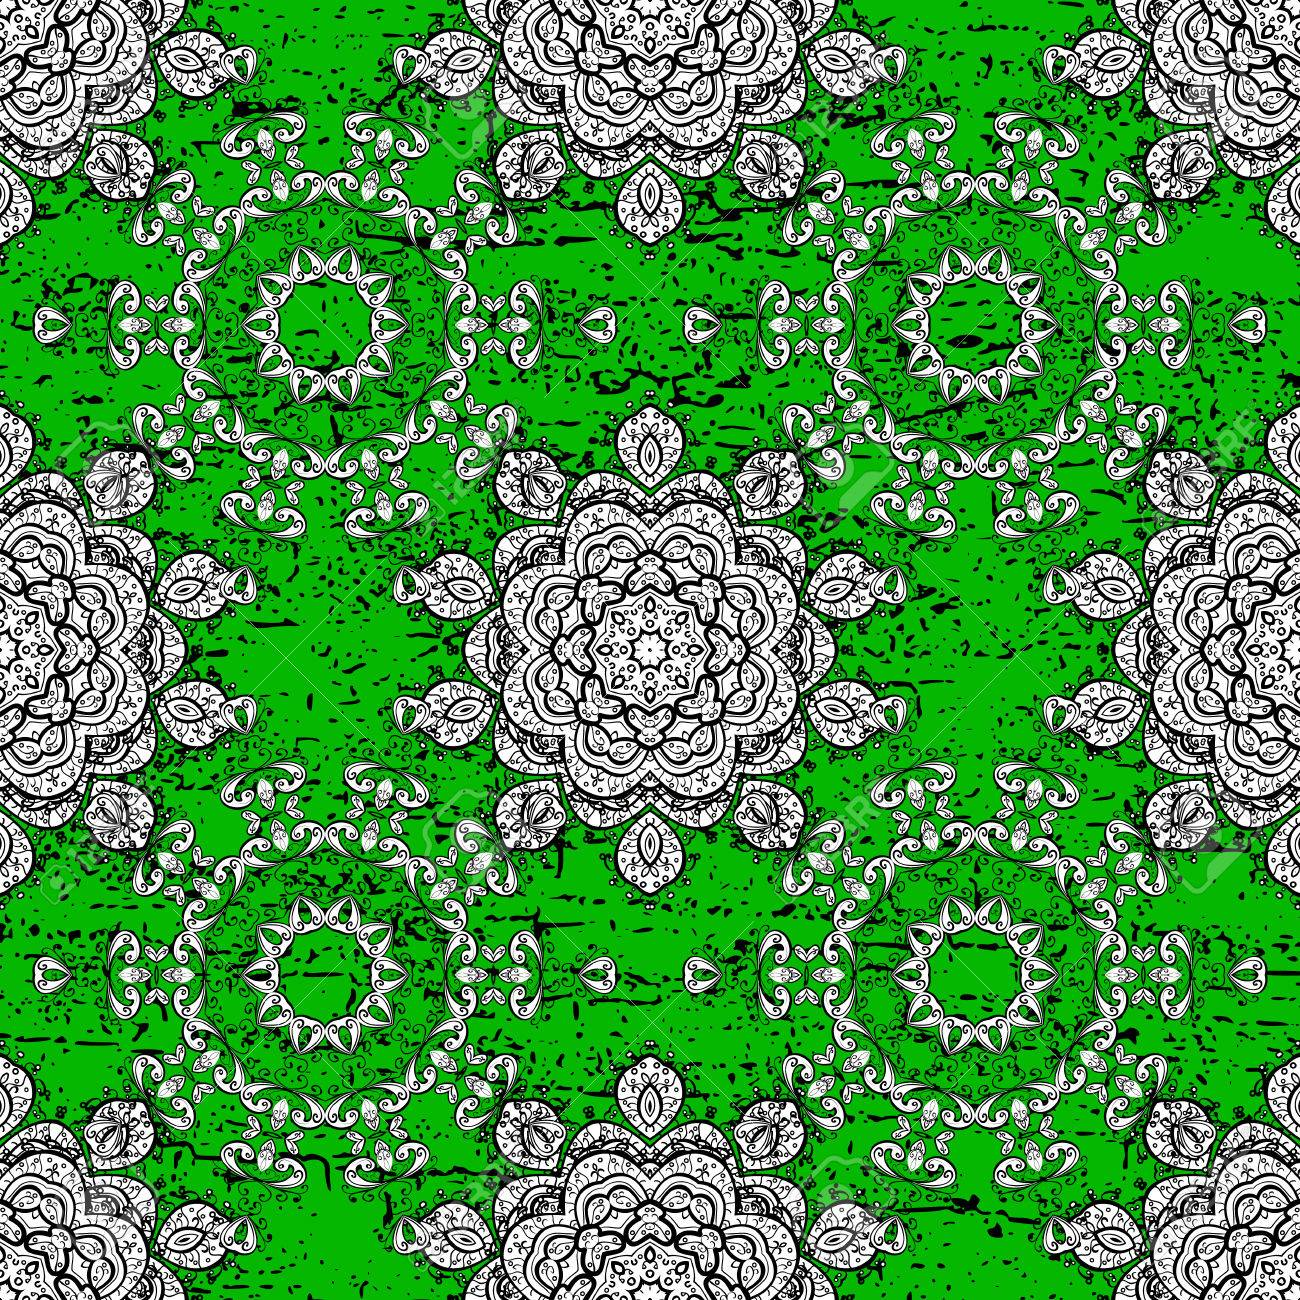 Rough Pattern For Adult Coloring Book. Ethnic, Floral, Retro ...